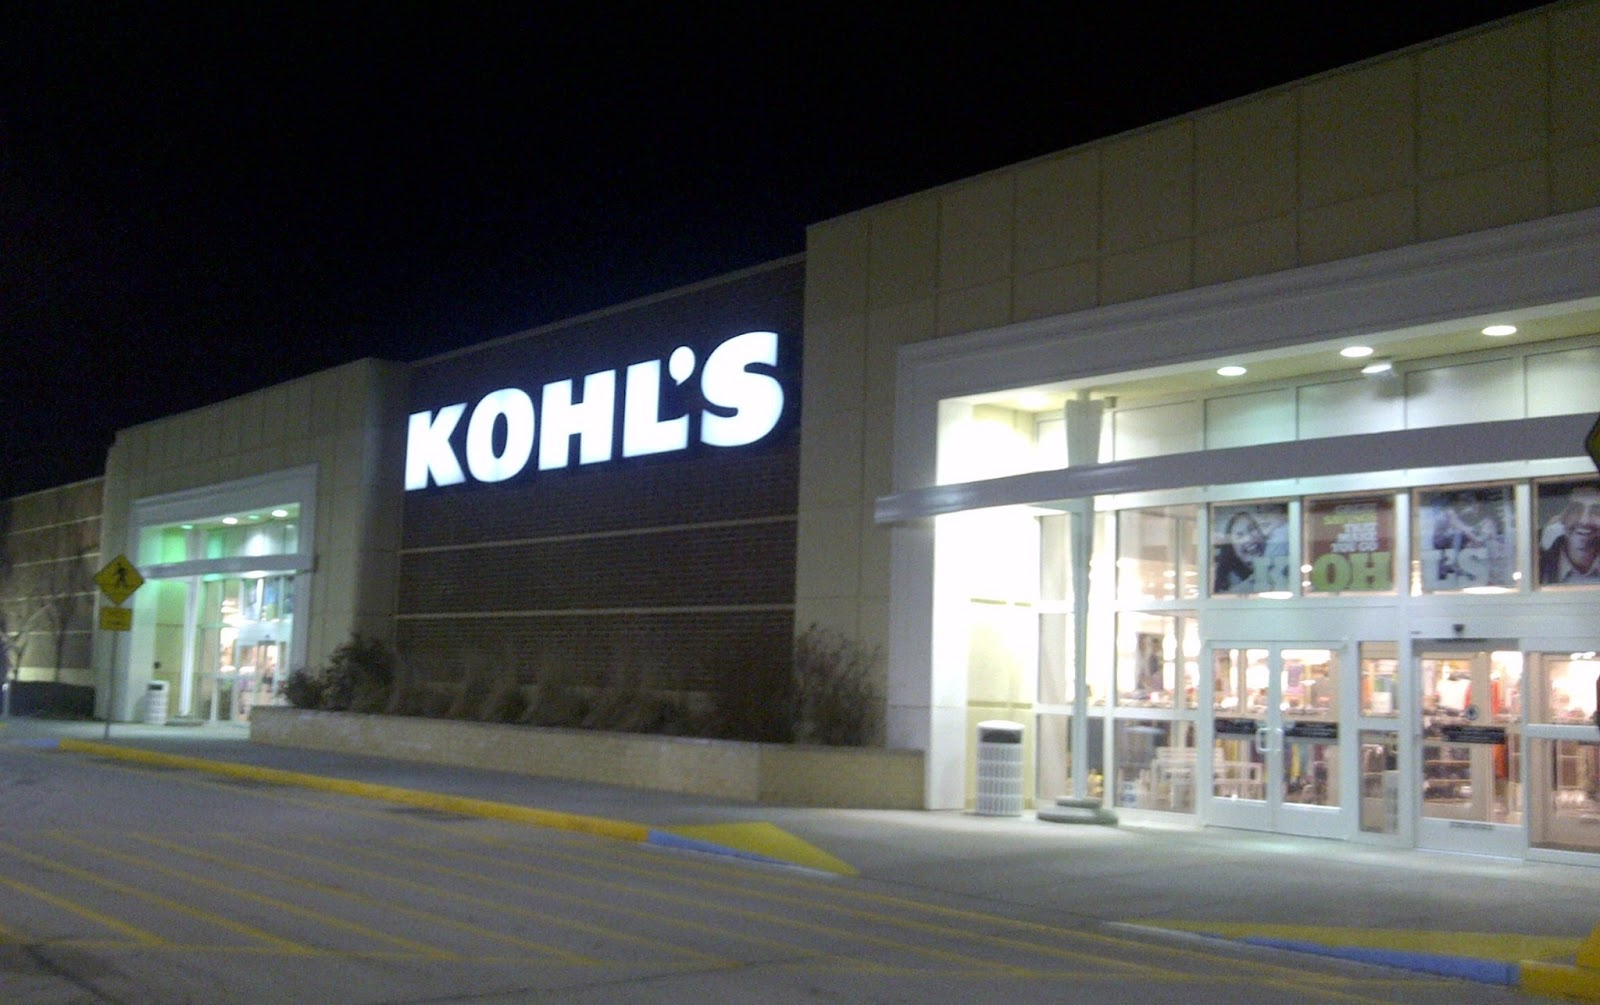 Kohl's coupons for December Find the best Kohl's coupons available online or printable coupons to make that purchase for your home. Kohl's often times offers a variety of 15%, 20% and even 30% off your entire order along with free shipping from backmicperpte.ml